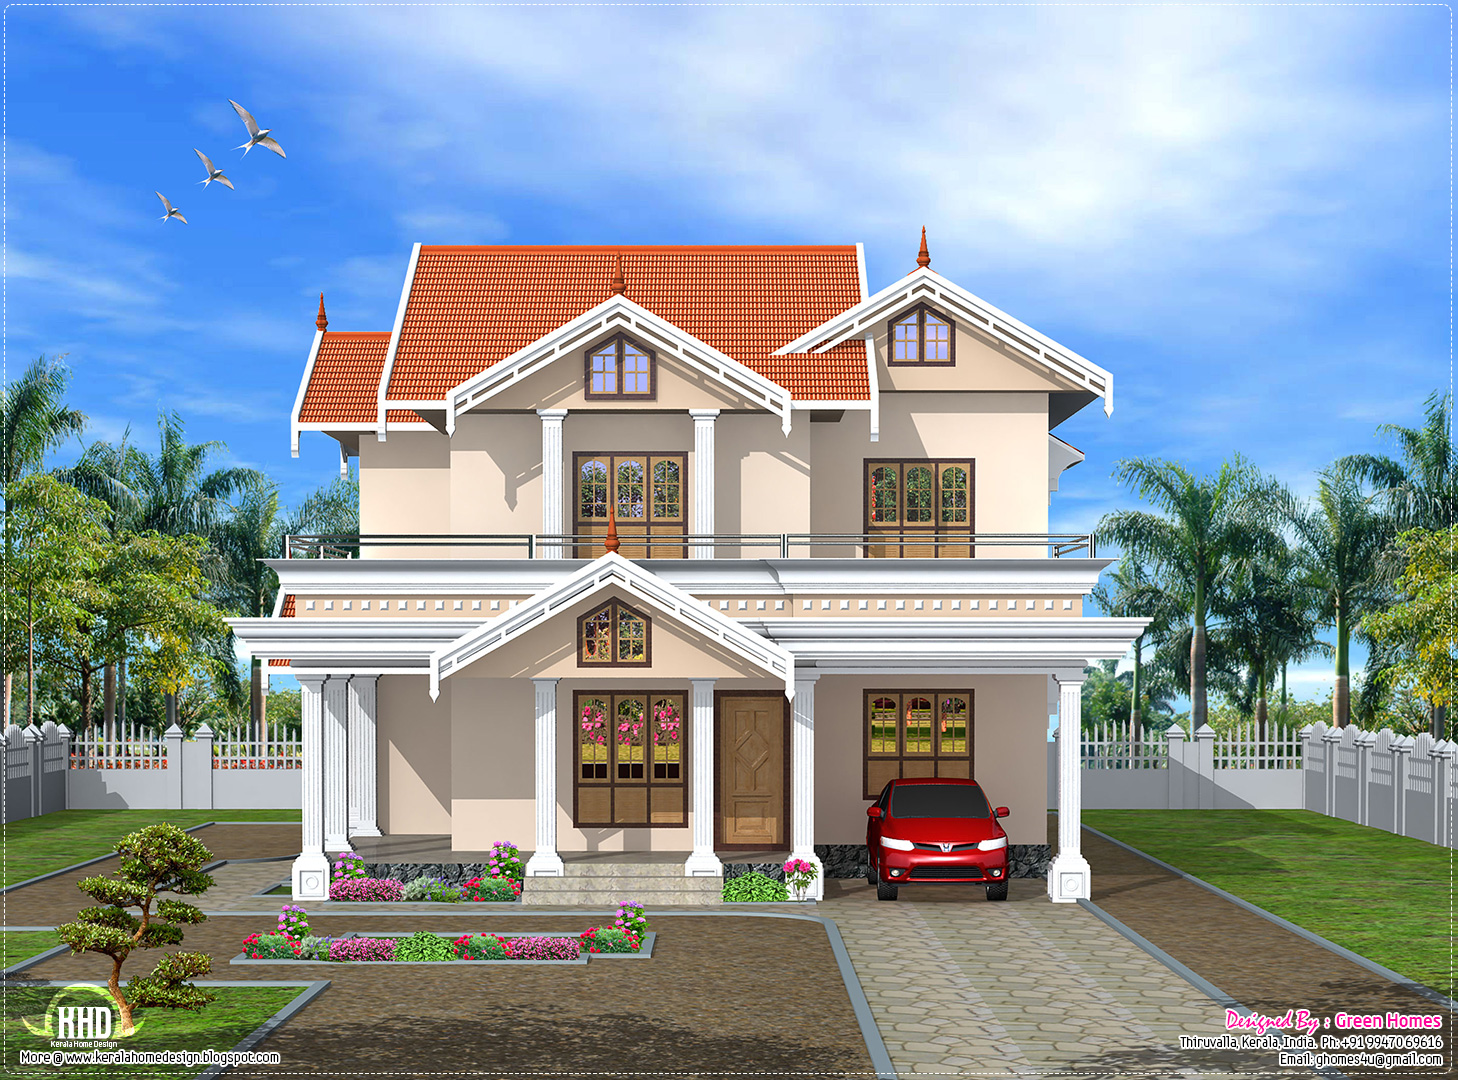 Front View Elevation Of House Plans : Different designs of front elevations views houses plans